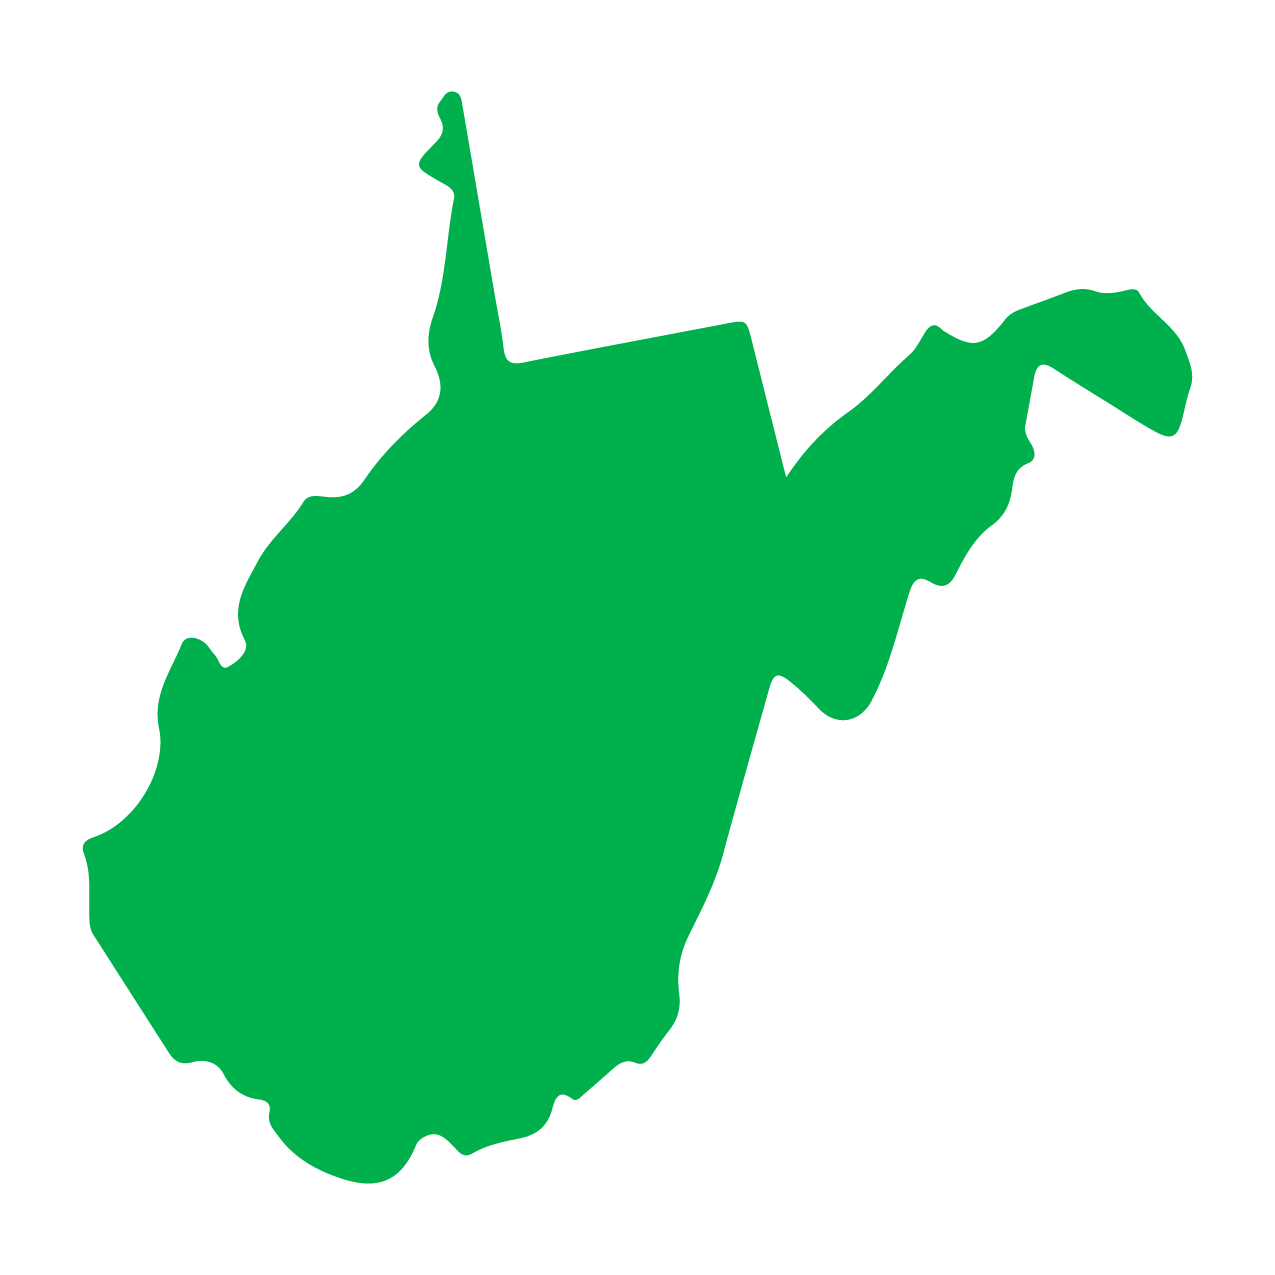 States_West Virginia.png